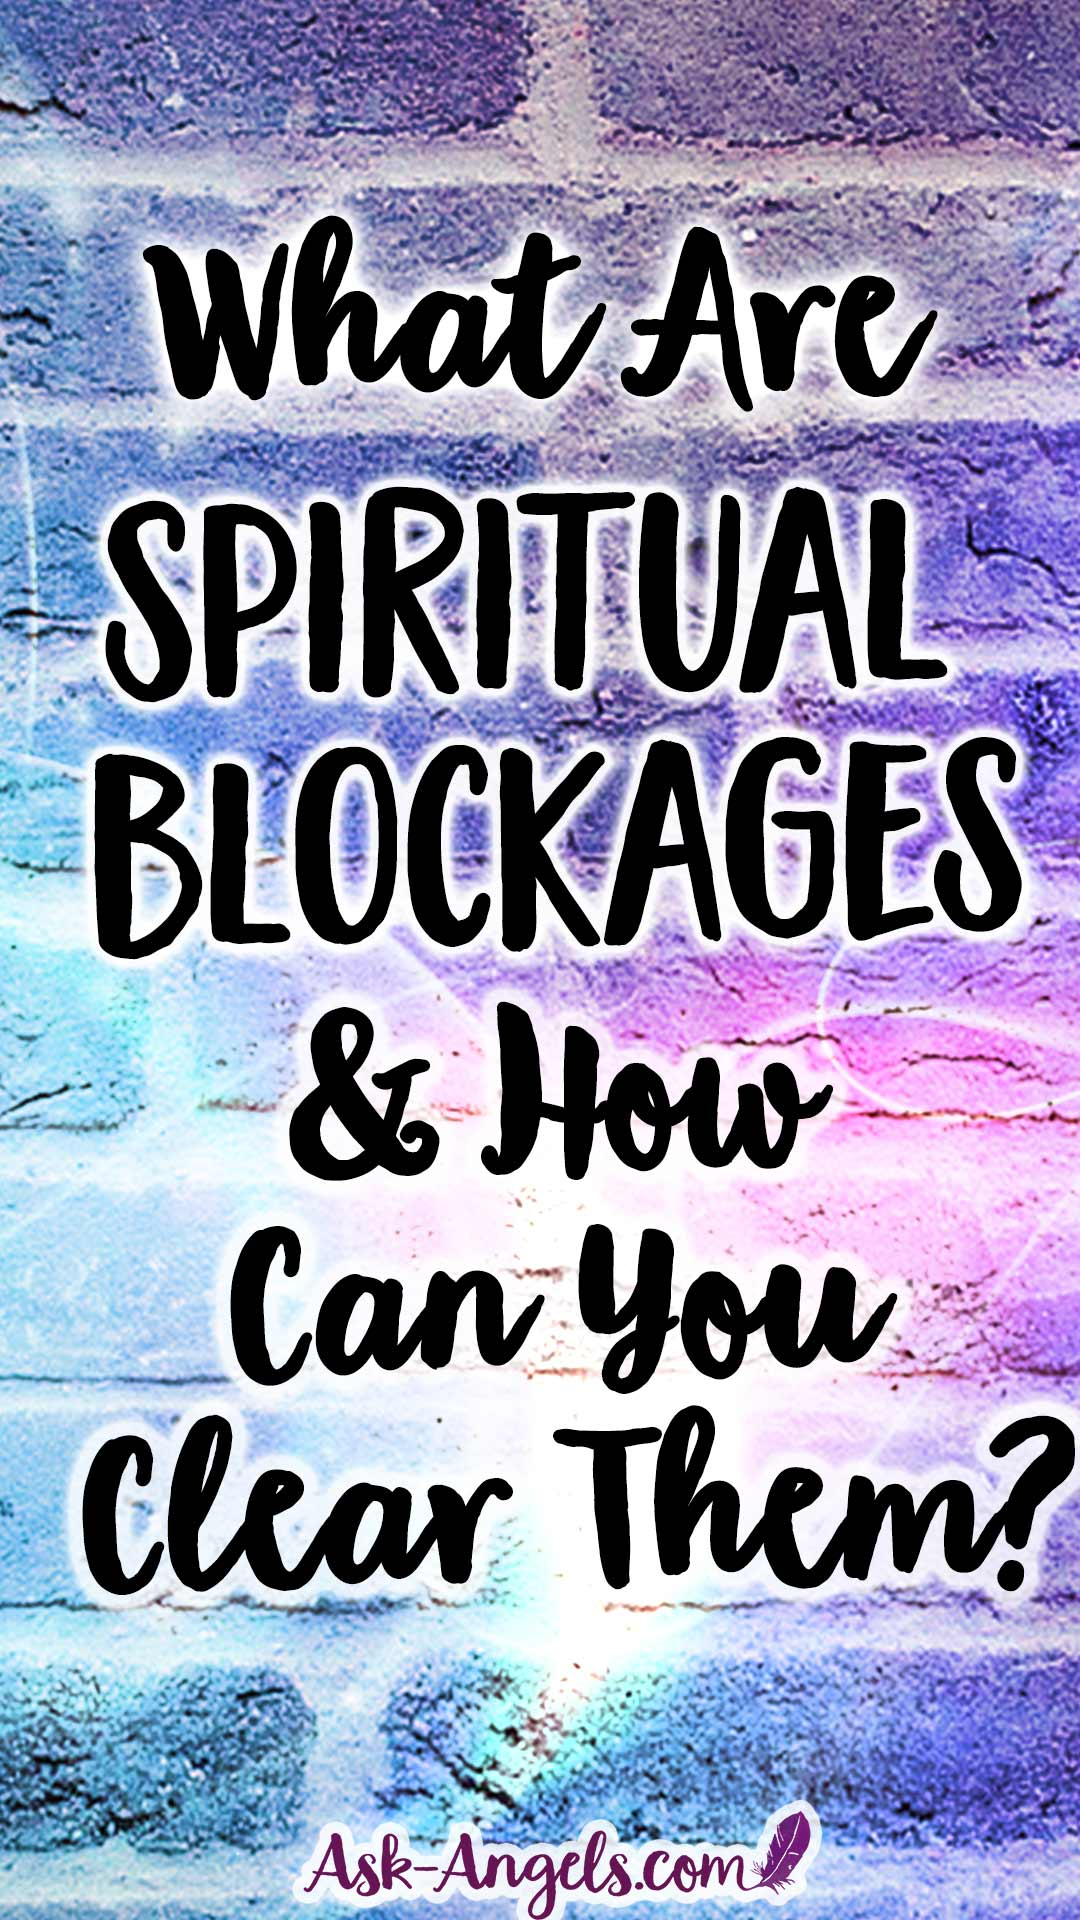 What are Spiritual Blockages and How Can You Clear Them?